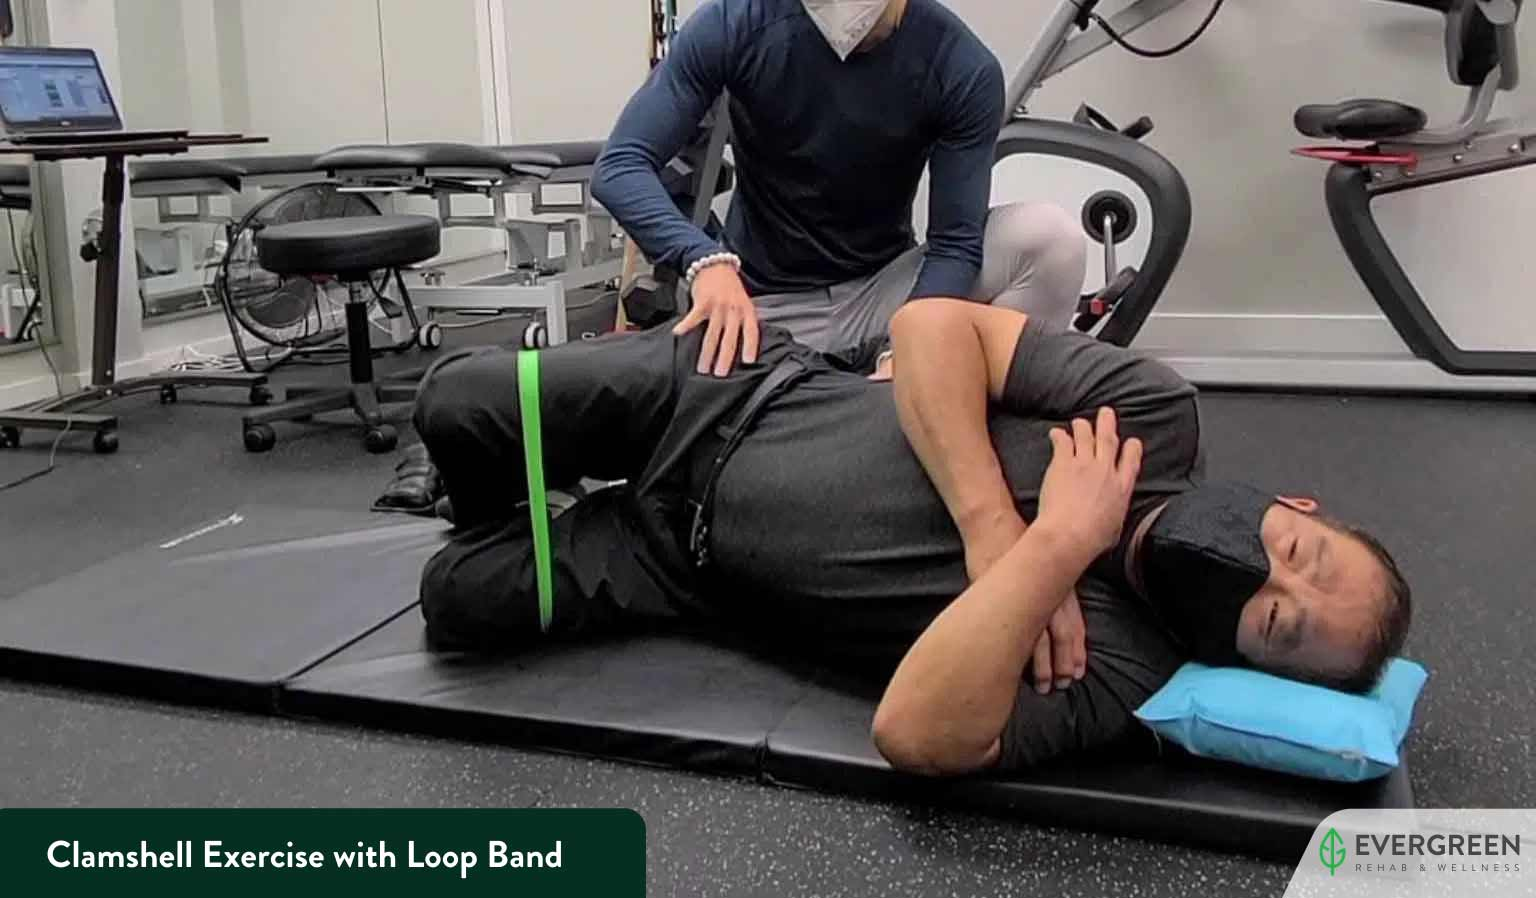 Clamshell Exercise with Loop Band